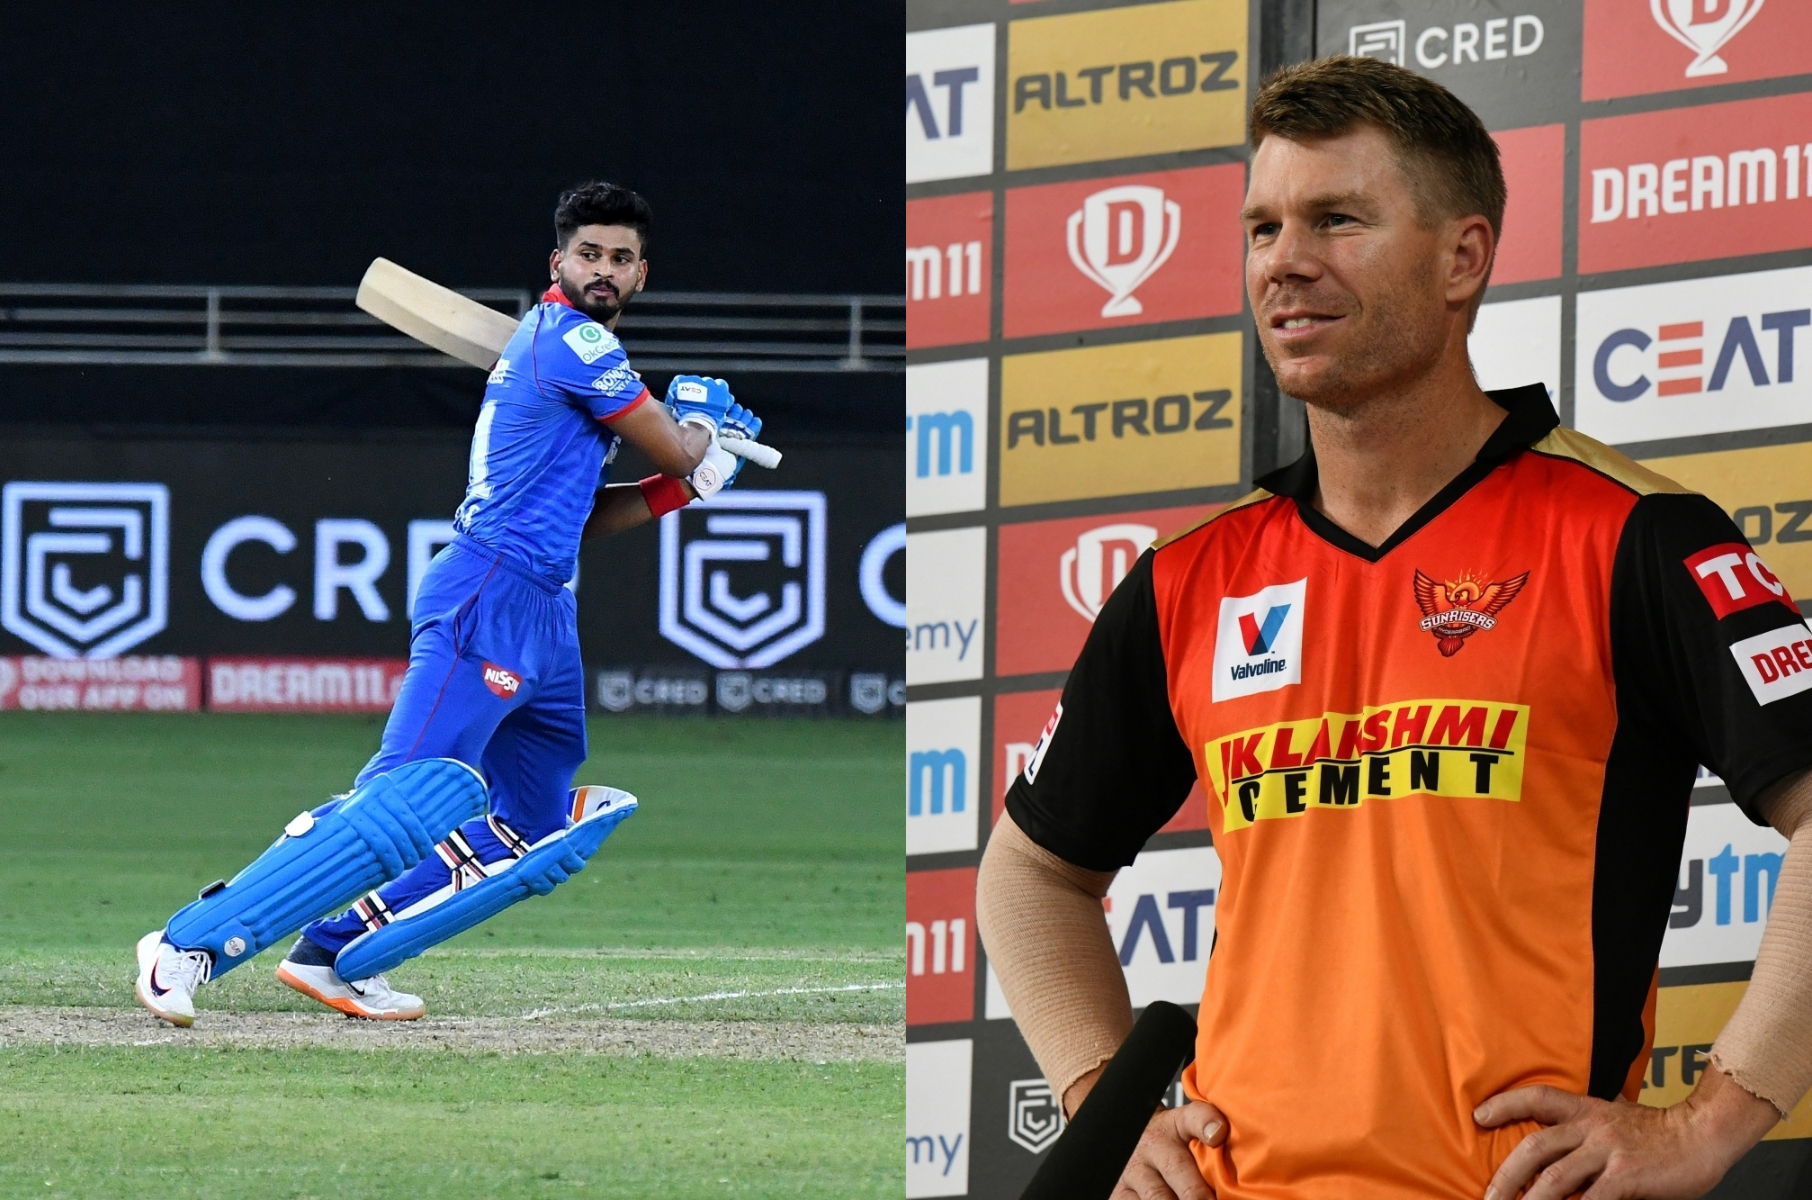 SRH is looking for their first win in IPL 2020, while DC are undefeated so far